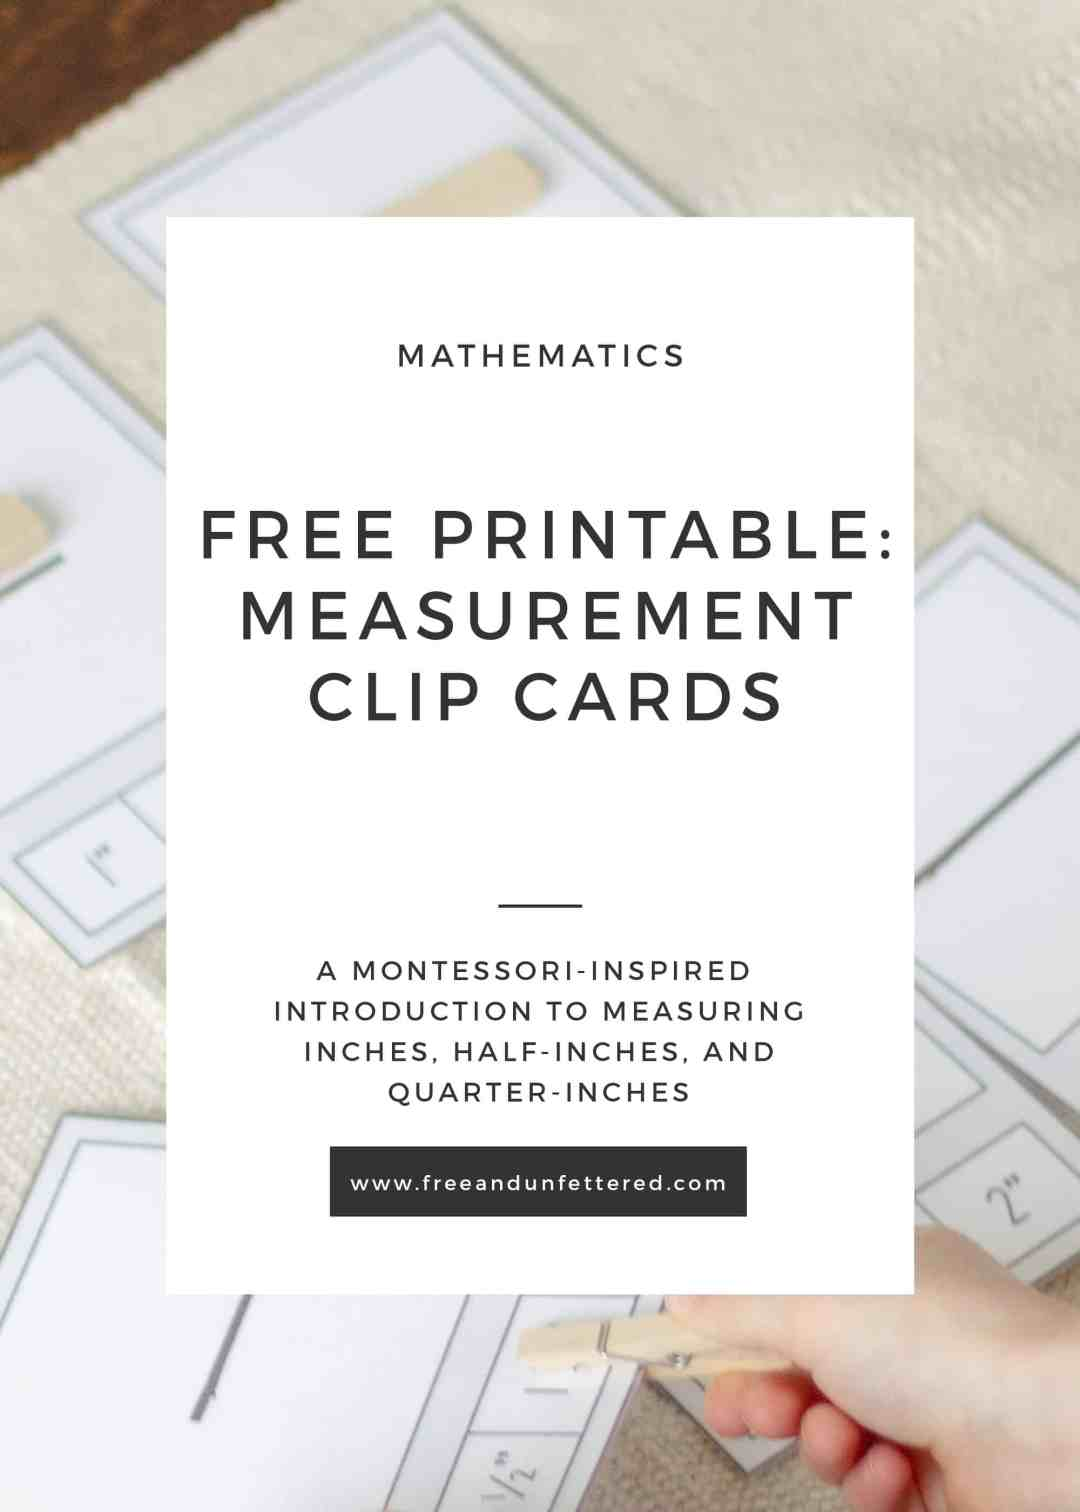 Free printable: measurement clip cards. A montessori-inspired introduction to measuring inches, half-inches, and quarter-inches.